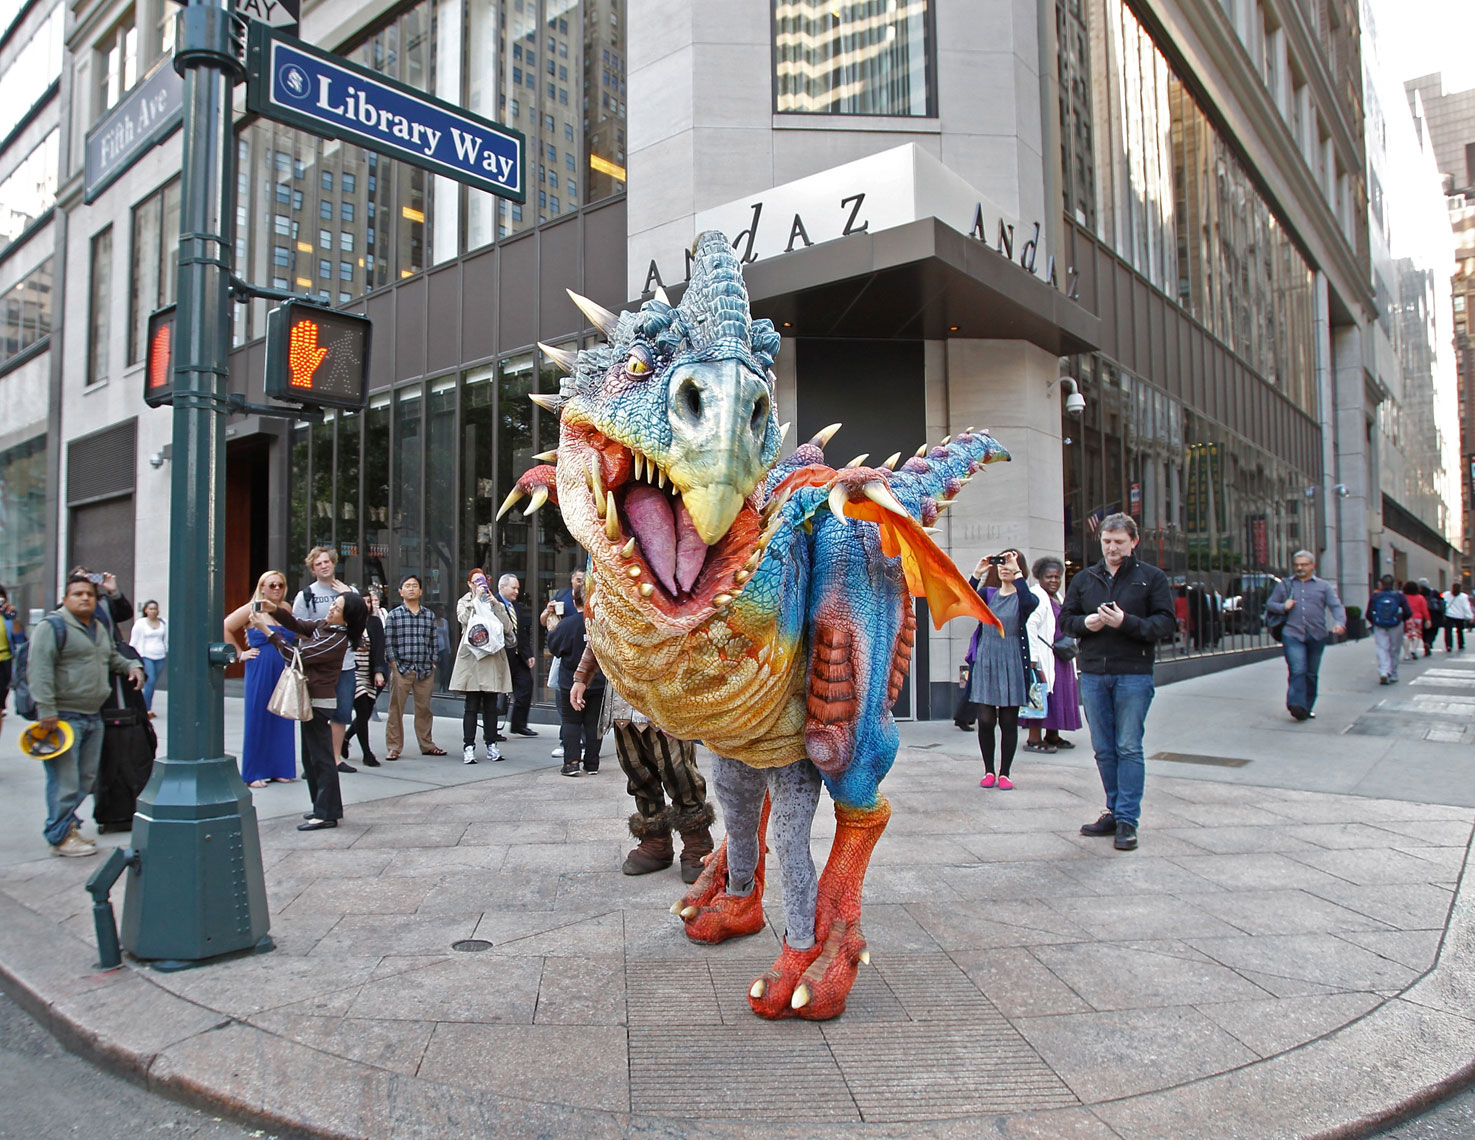 NYPublicLibraryDragon3.jpg